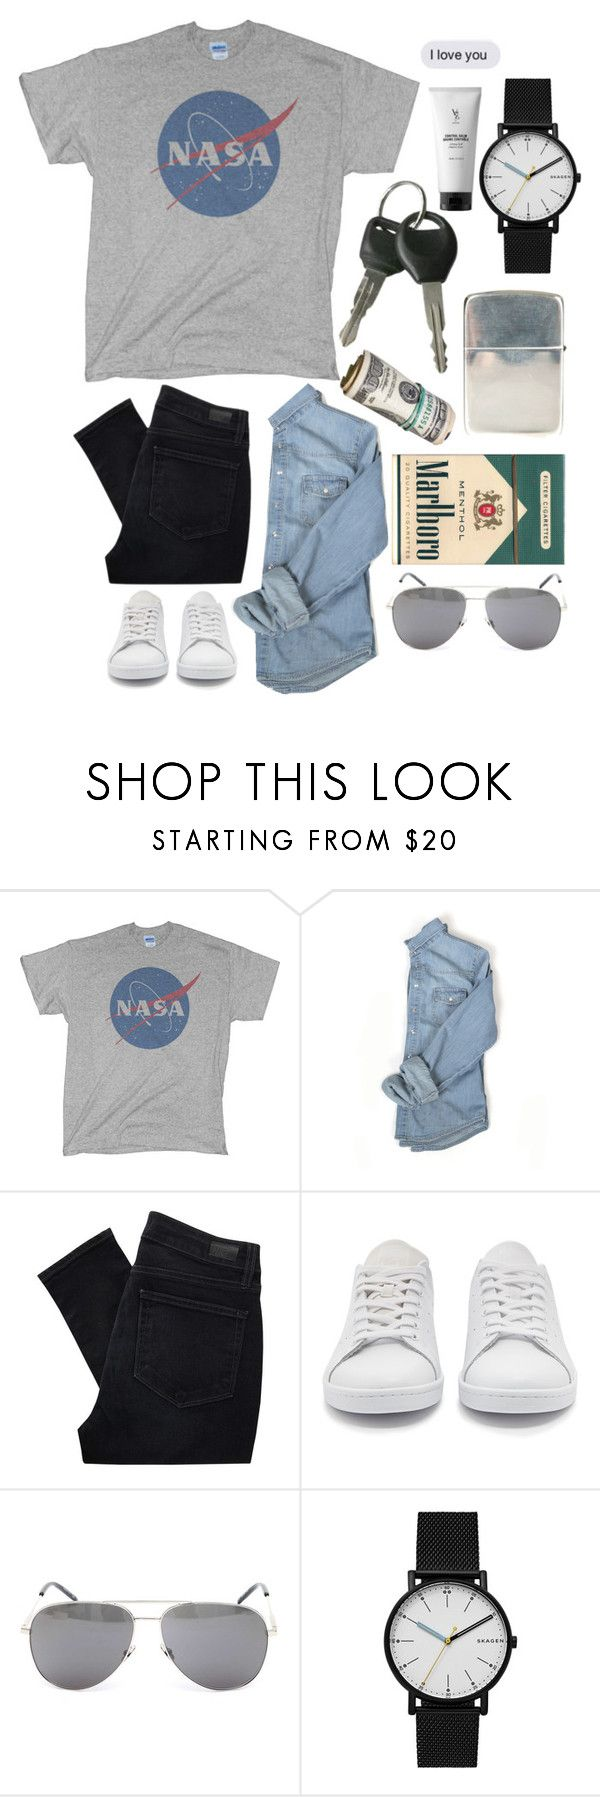 """""""«for him.» 7.07.2017"""" by renyic ❤ liked on Polyvore featuring Paige Denim, adidas Originals, Ugo Cacciatori, Yves Saint Laurent, Skagen, V76 by Vaughn, men's fashion and menswear"""